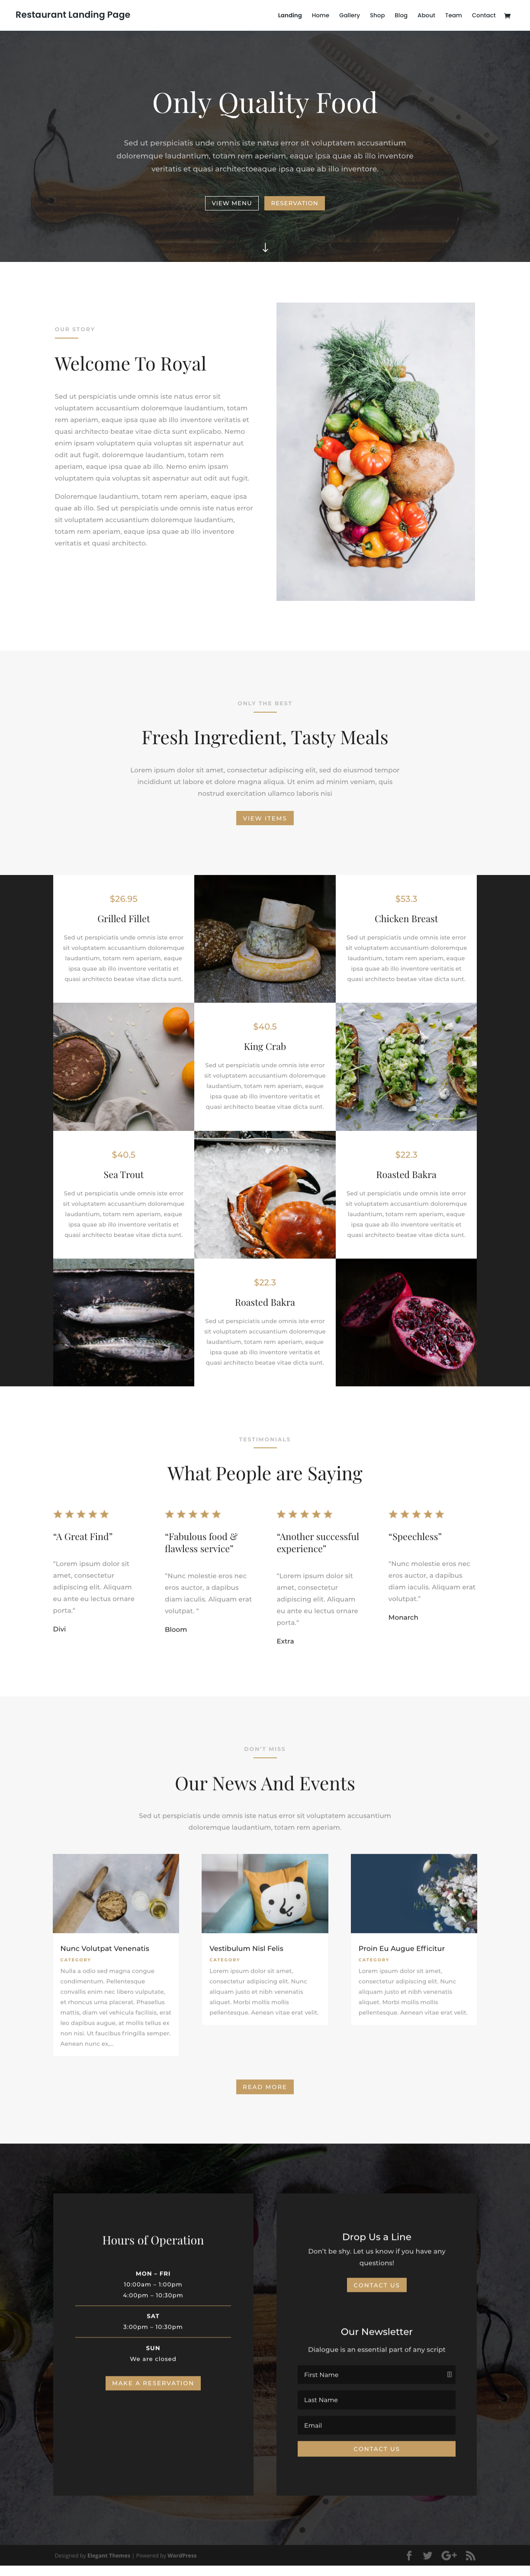 A layout for a template for a restaurant website